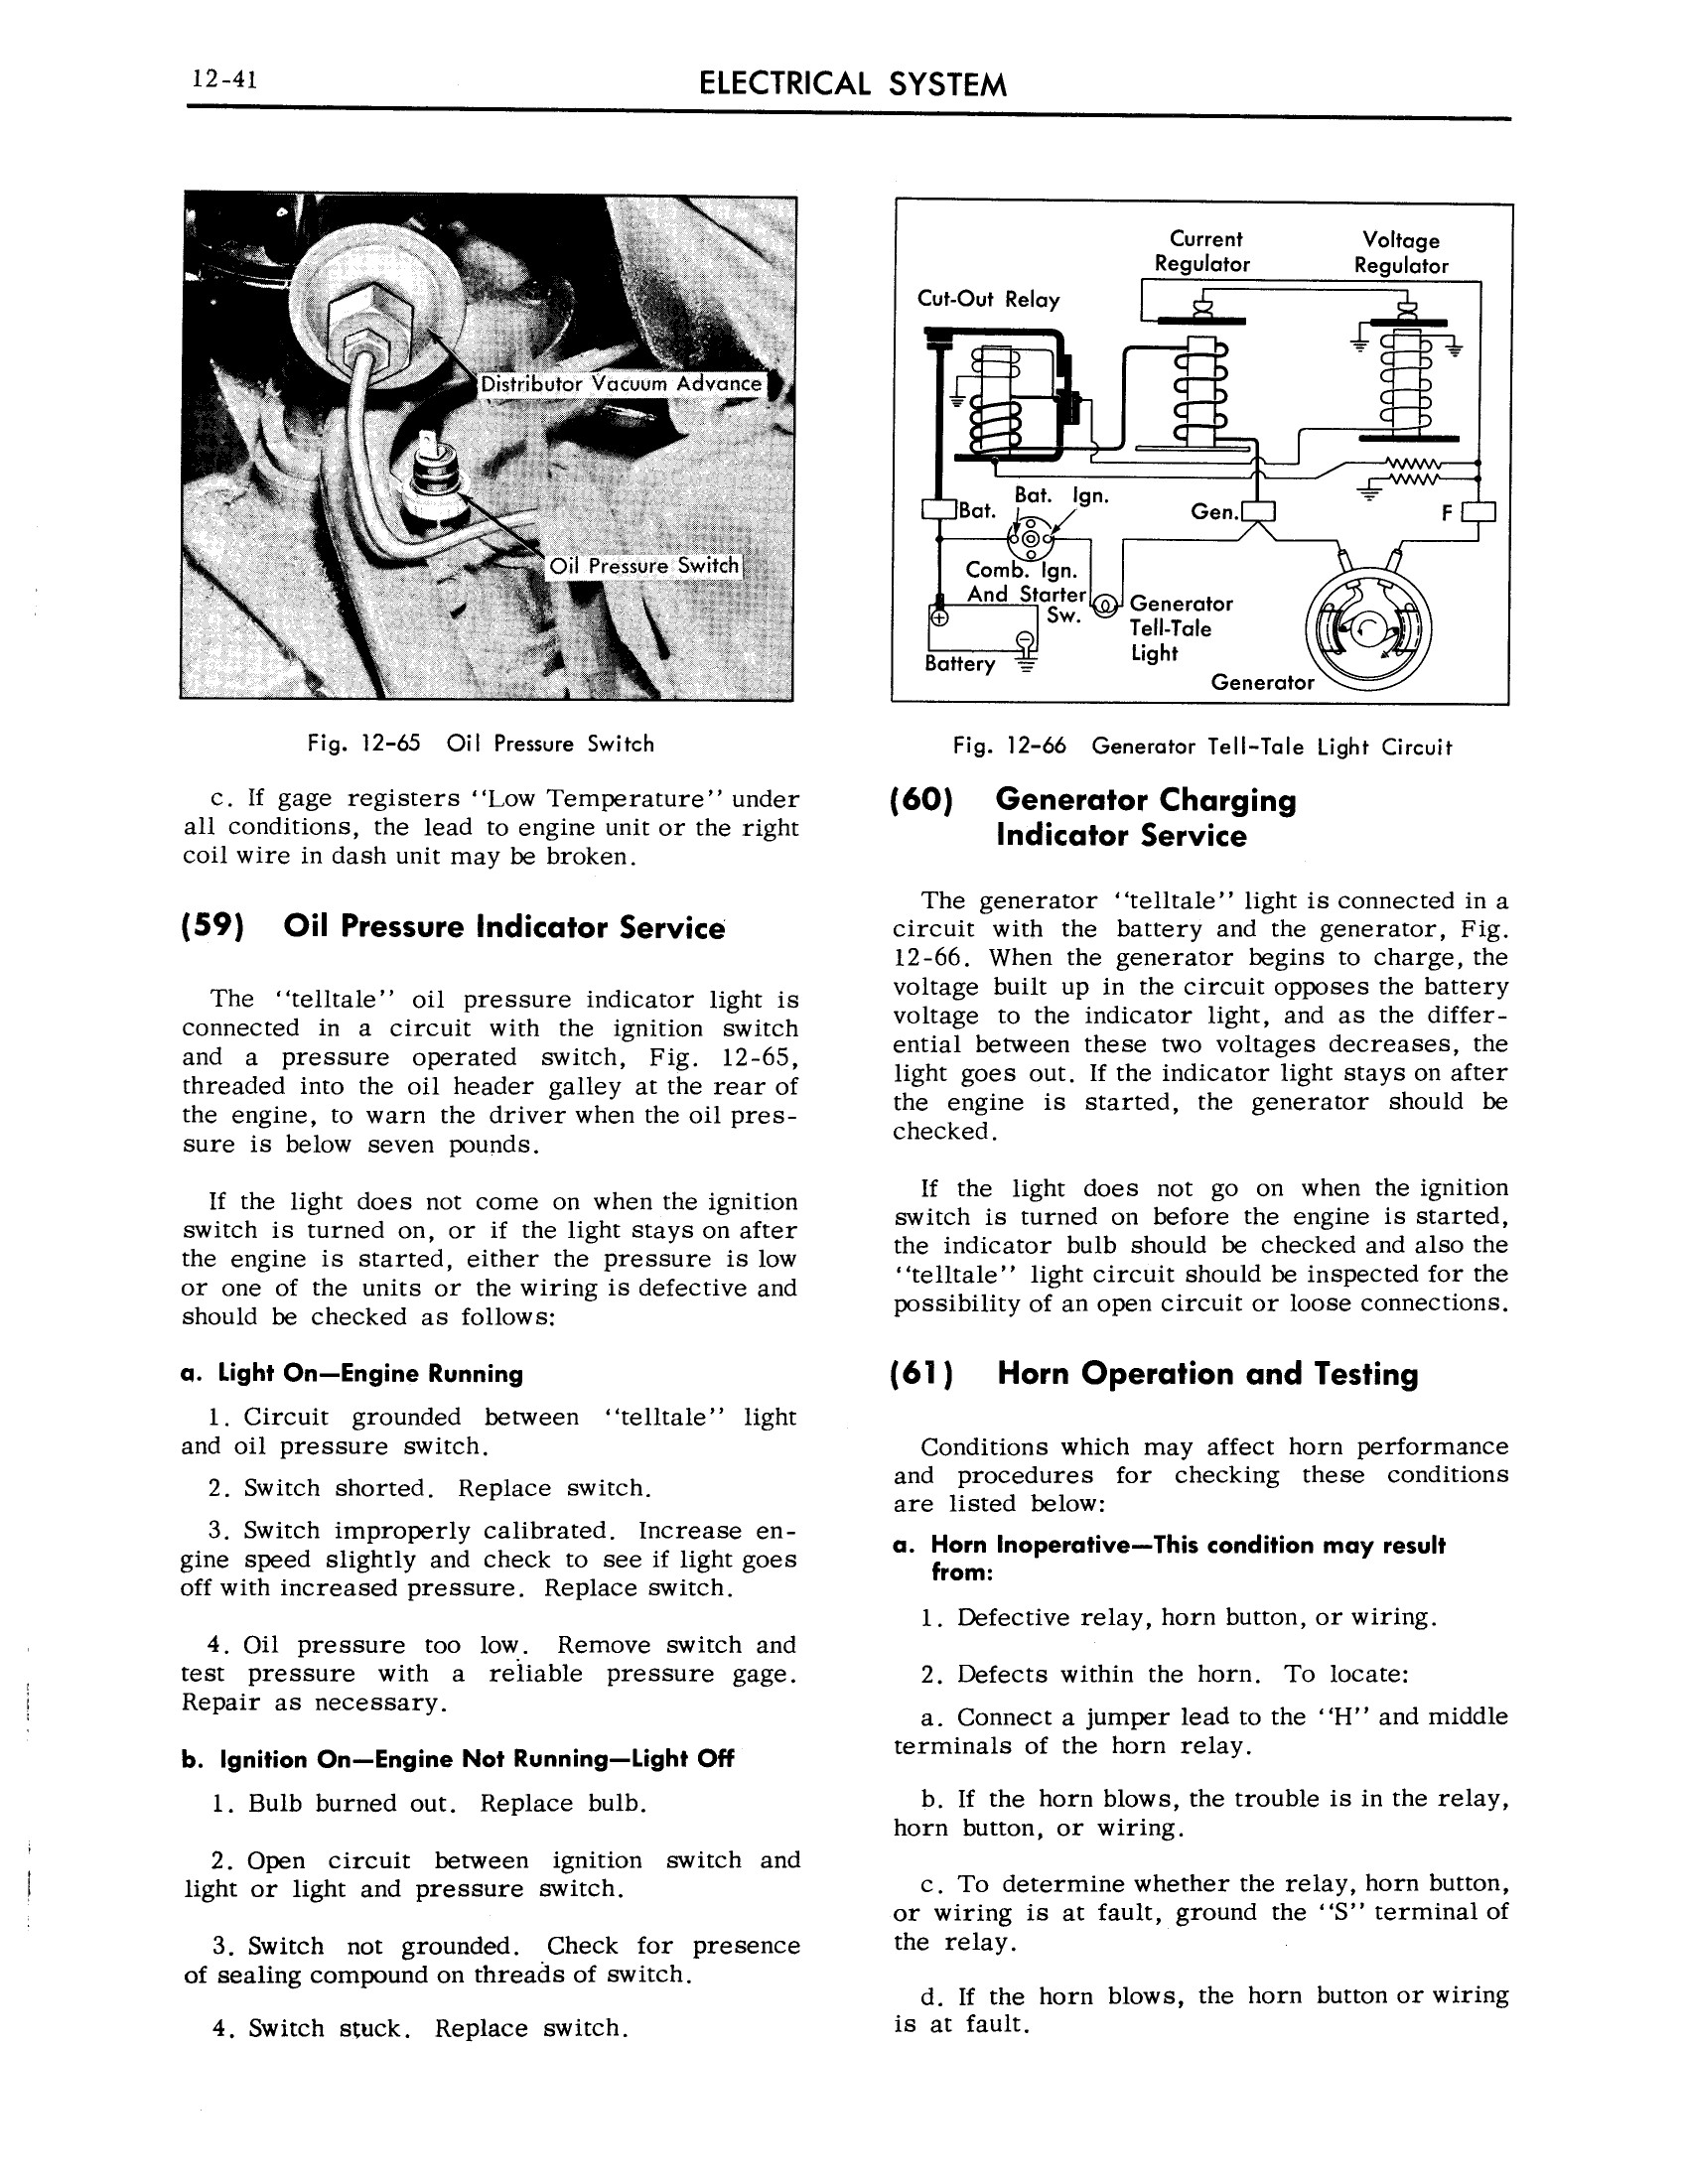 1959 Cadillac Shop Manual- Electrical System Page 41 of 49